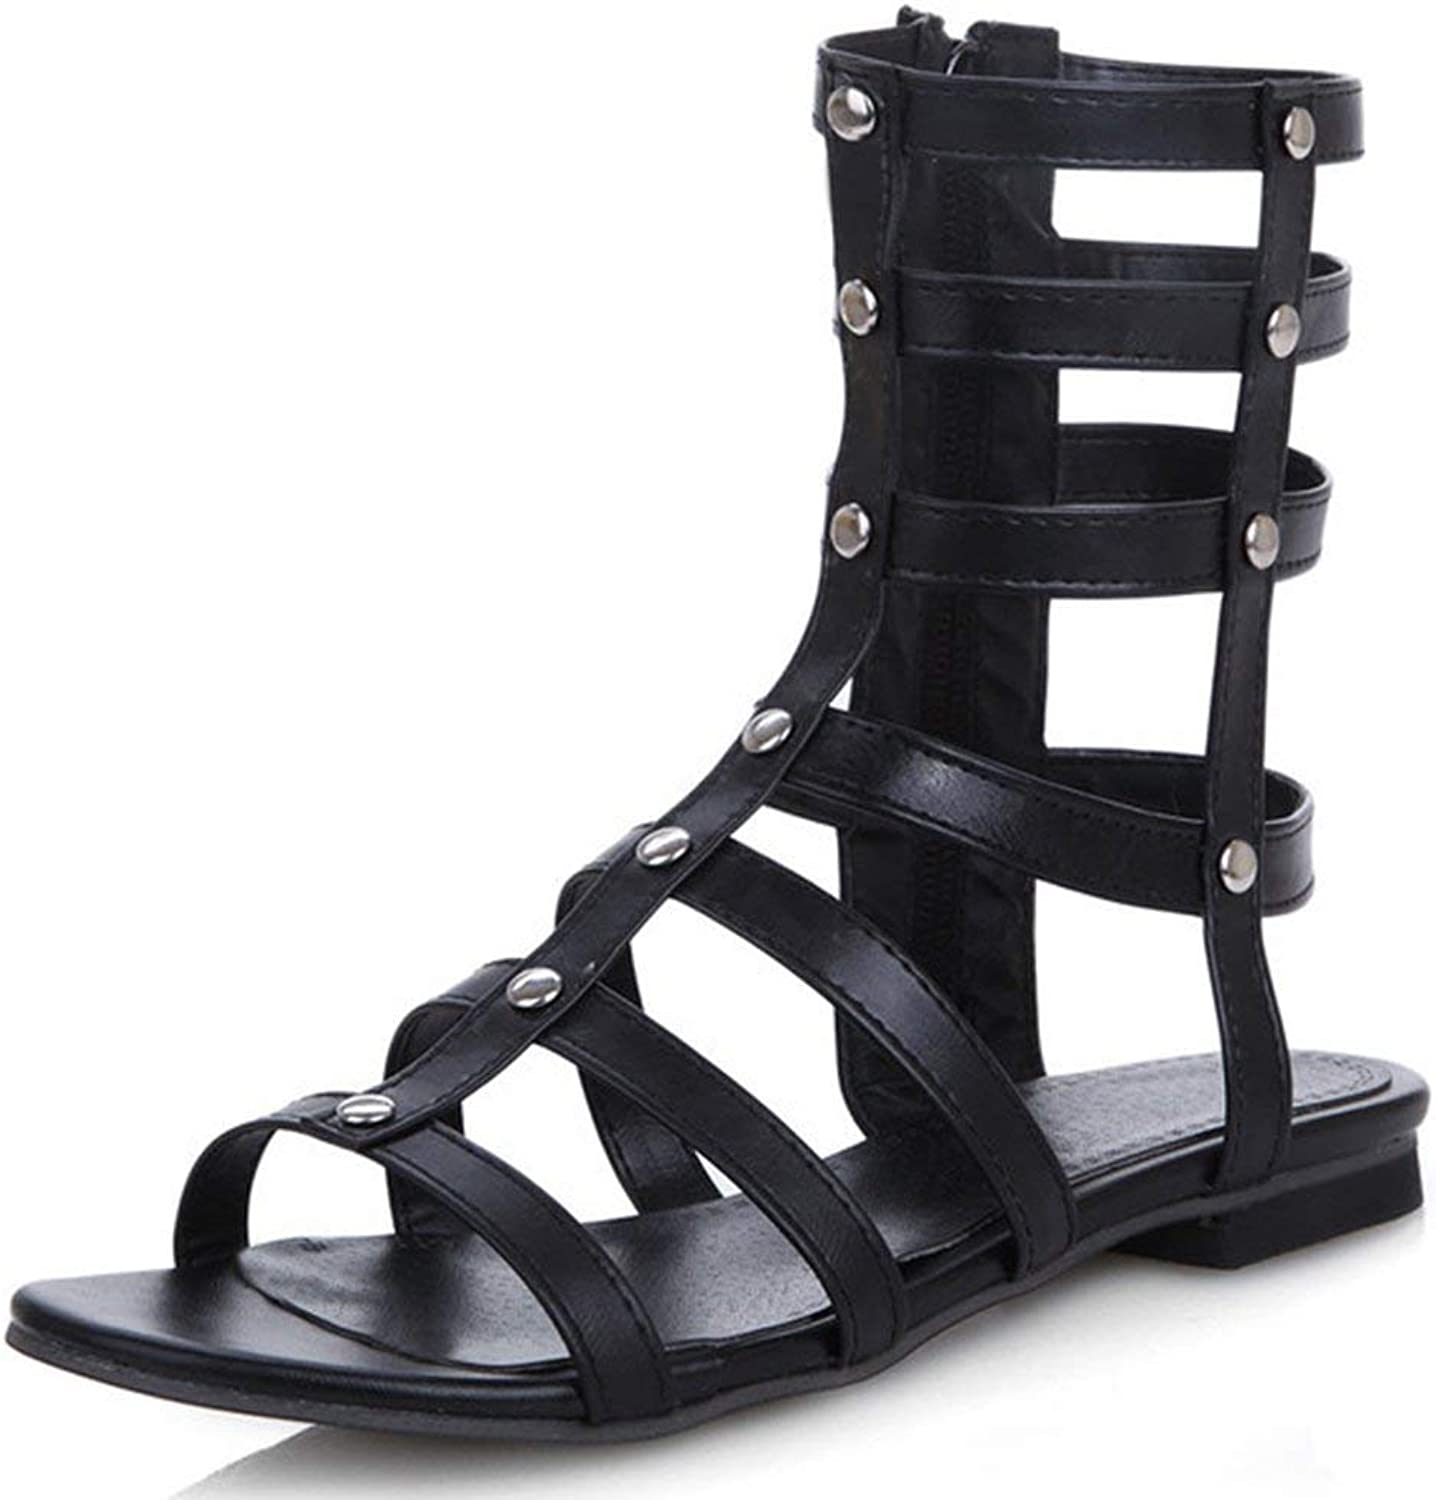 Ghssheh Women's Trendy Cut Out Rivets Studded Mid Calf Boots Side Zipper Flat Gladiator Sandals White 4 M US